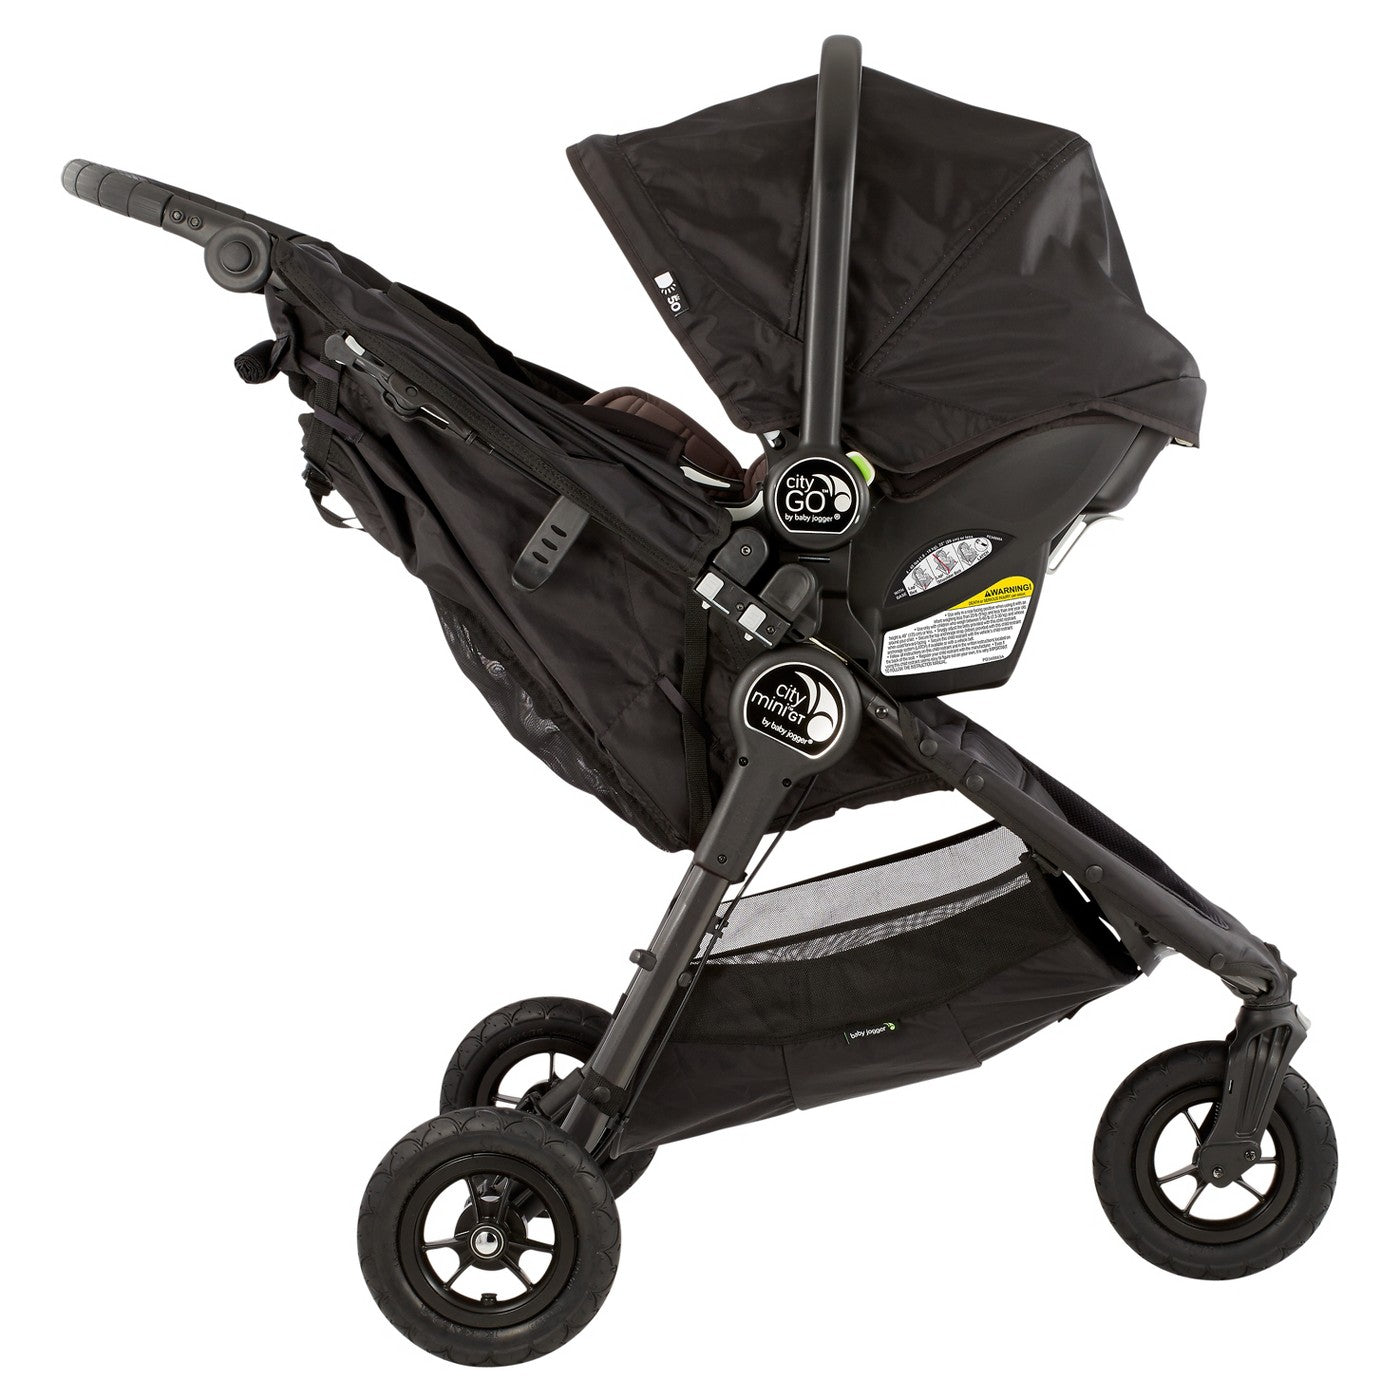 Baby Jogger City MiniR GT Travel System In Black And Gray With Car Seat Attached